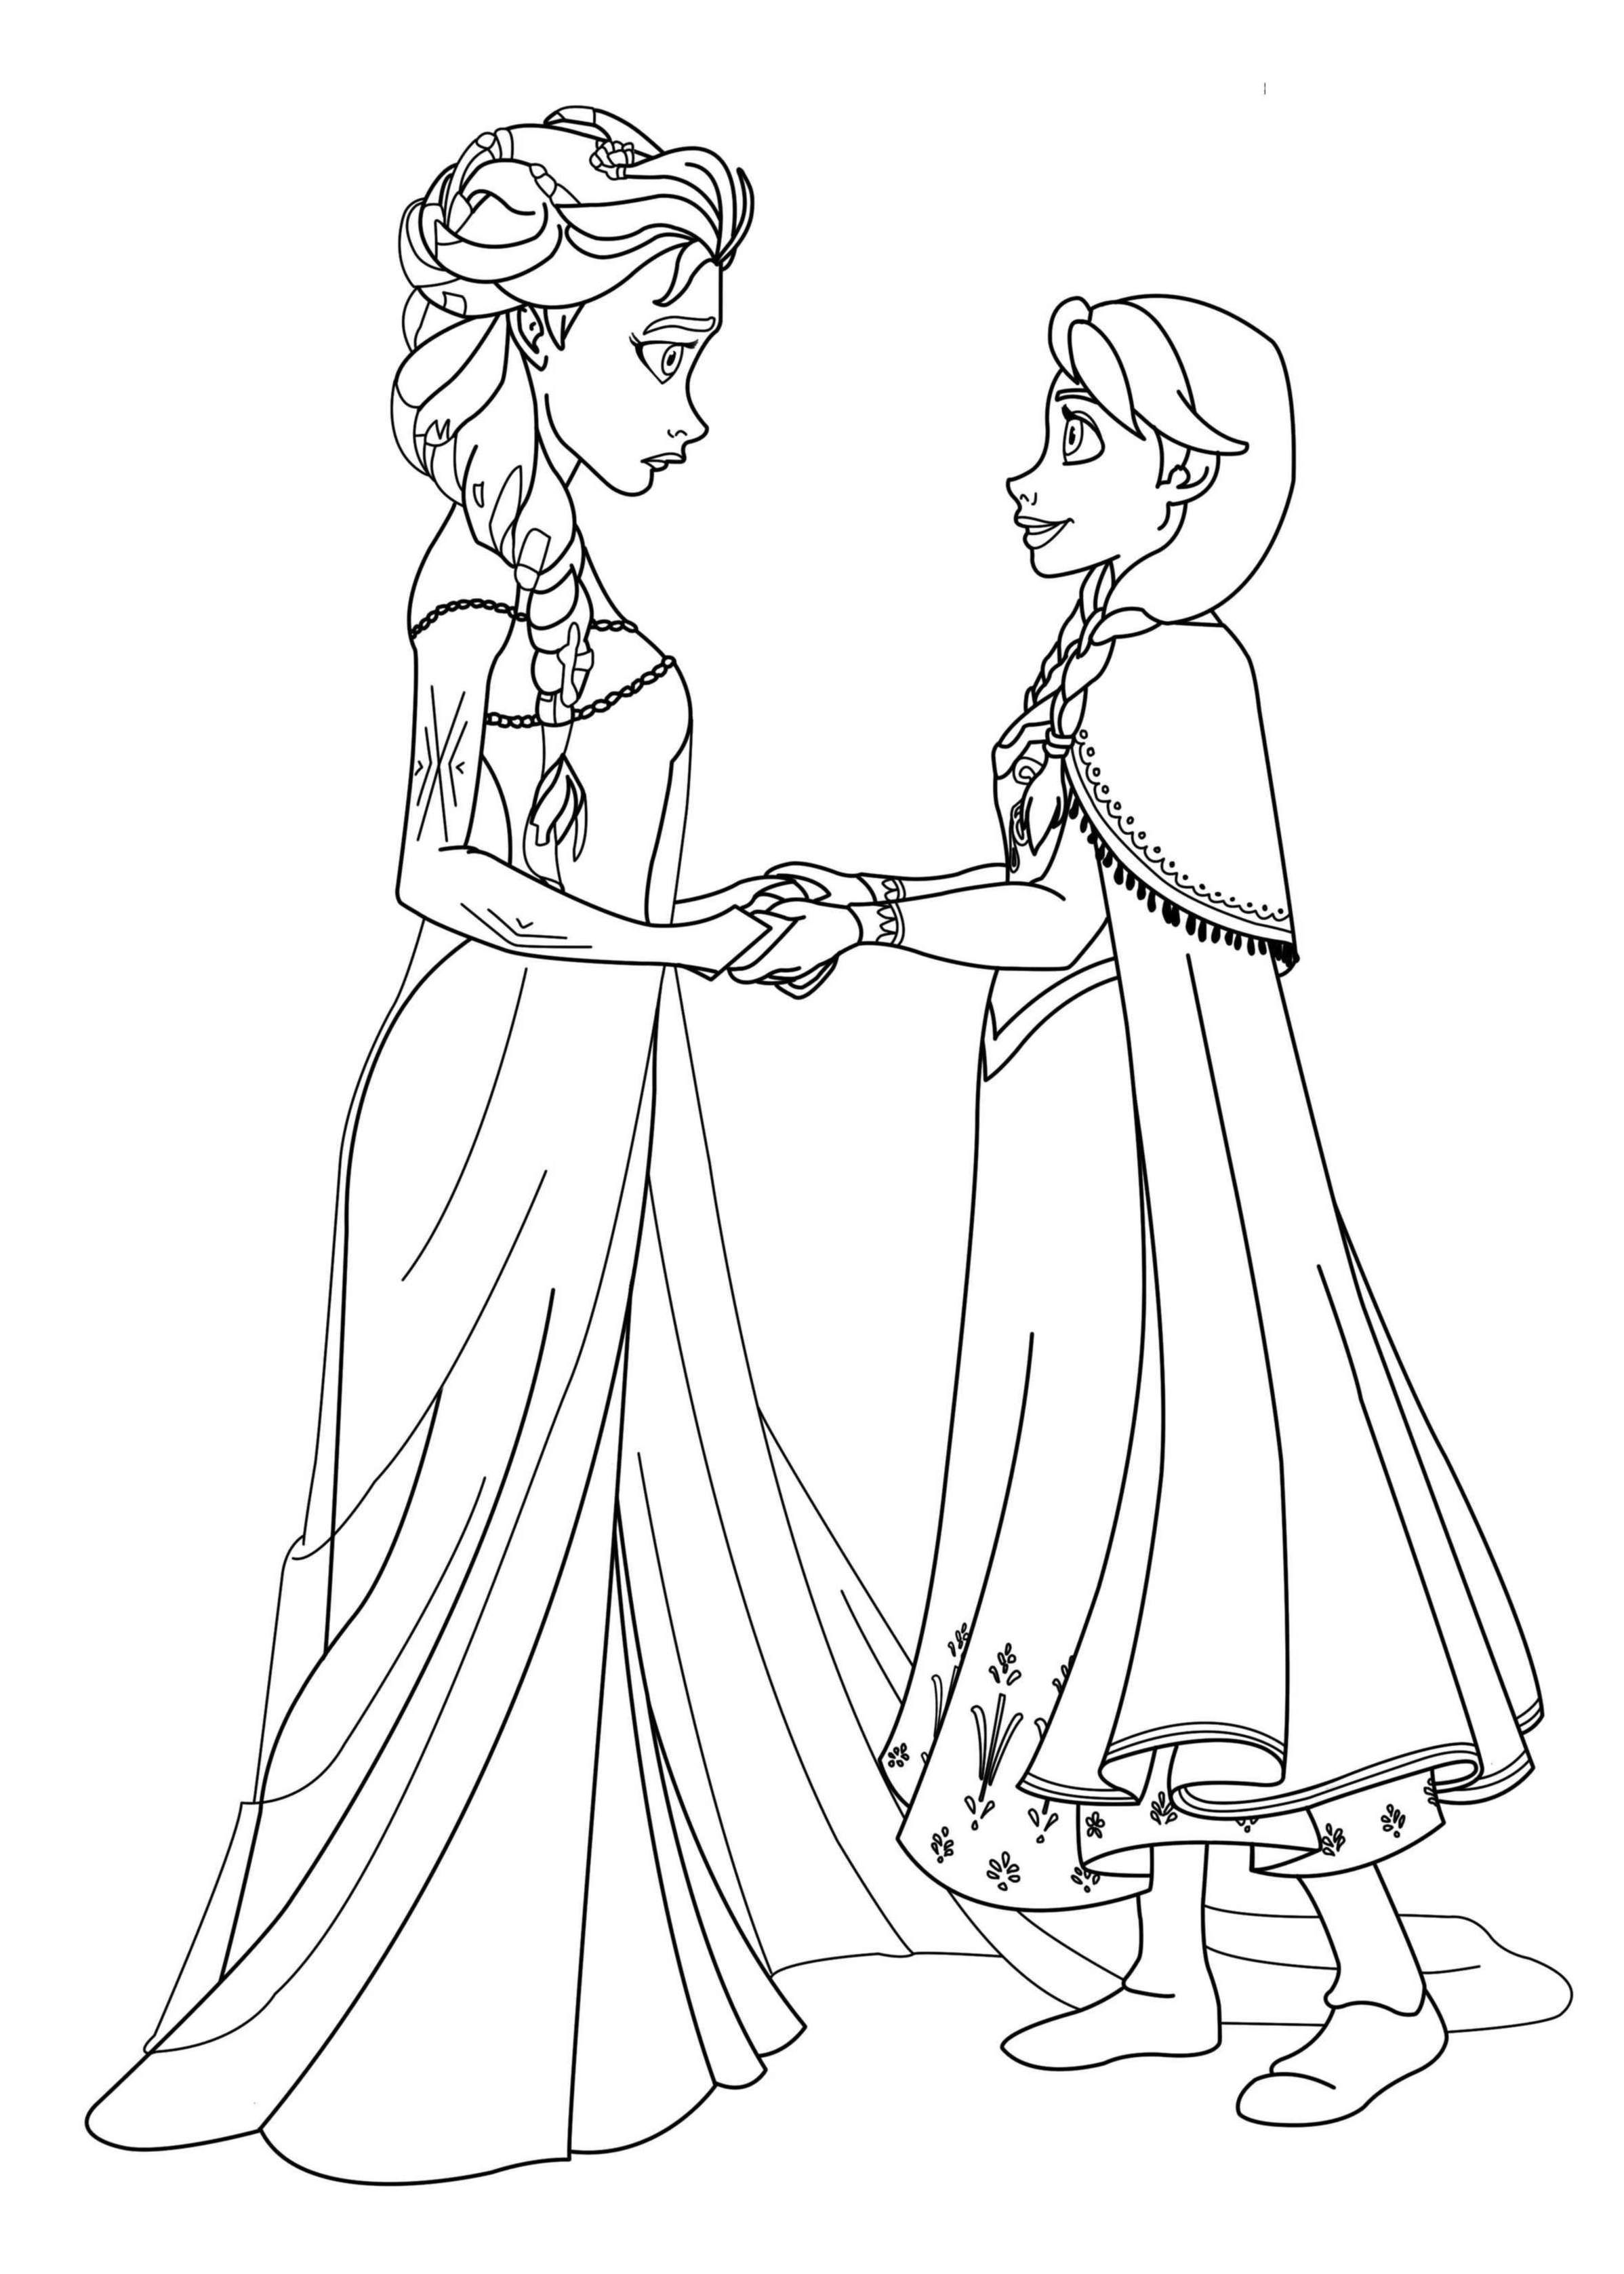 coloring pictures of frozen characters frozen free to color for children frozen kids coloring pages coloring pictures frozen characters of